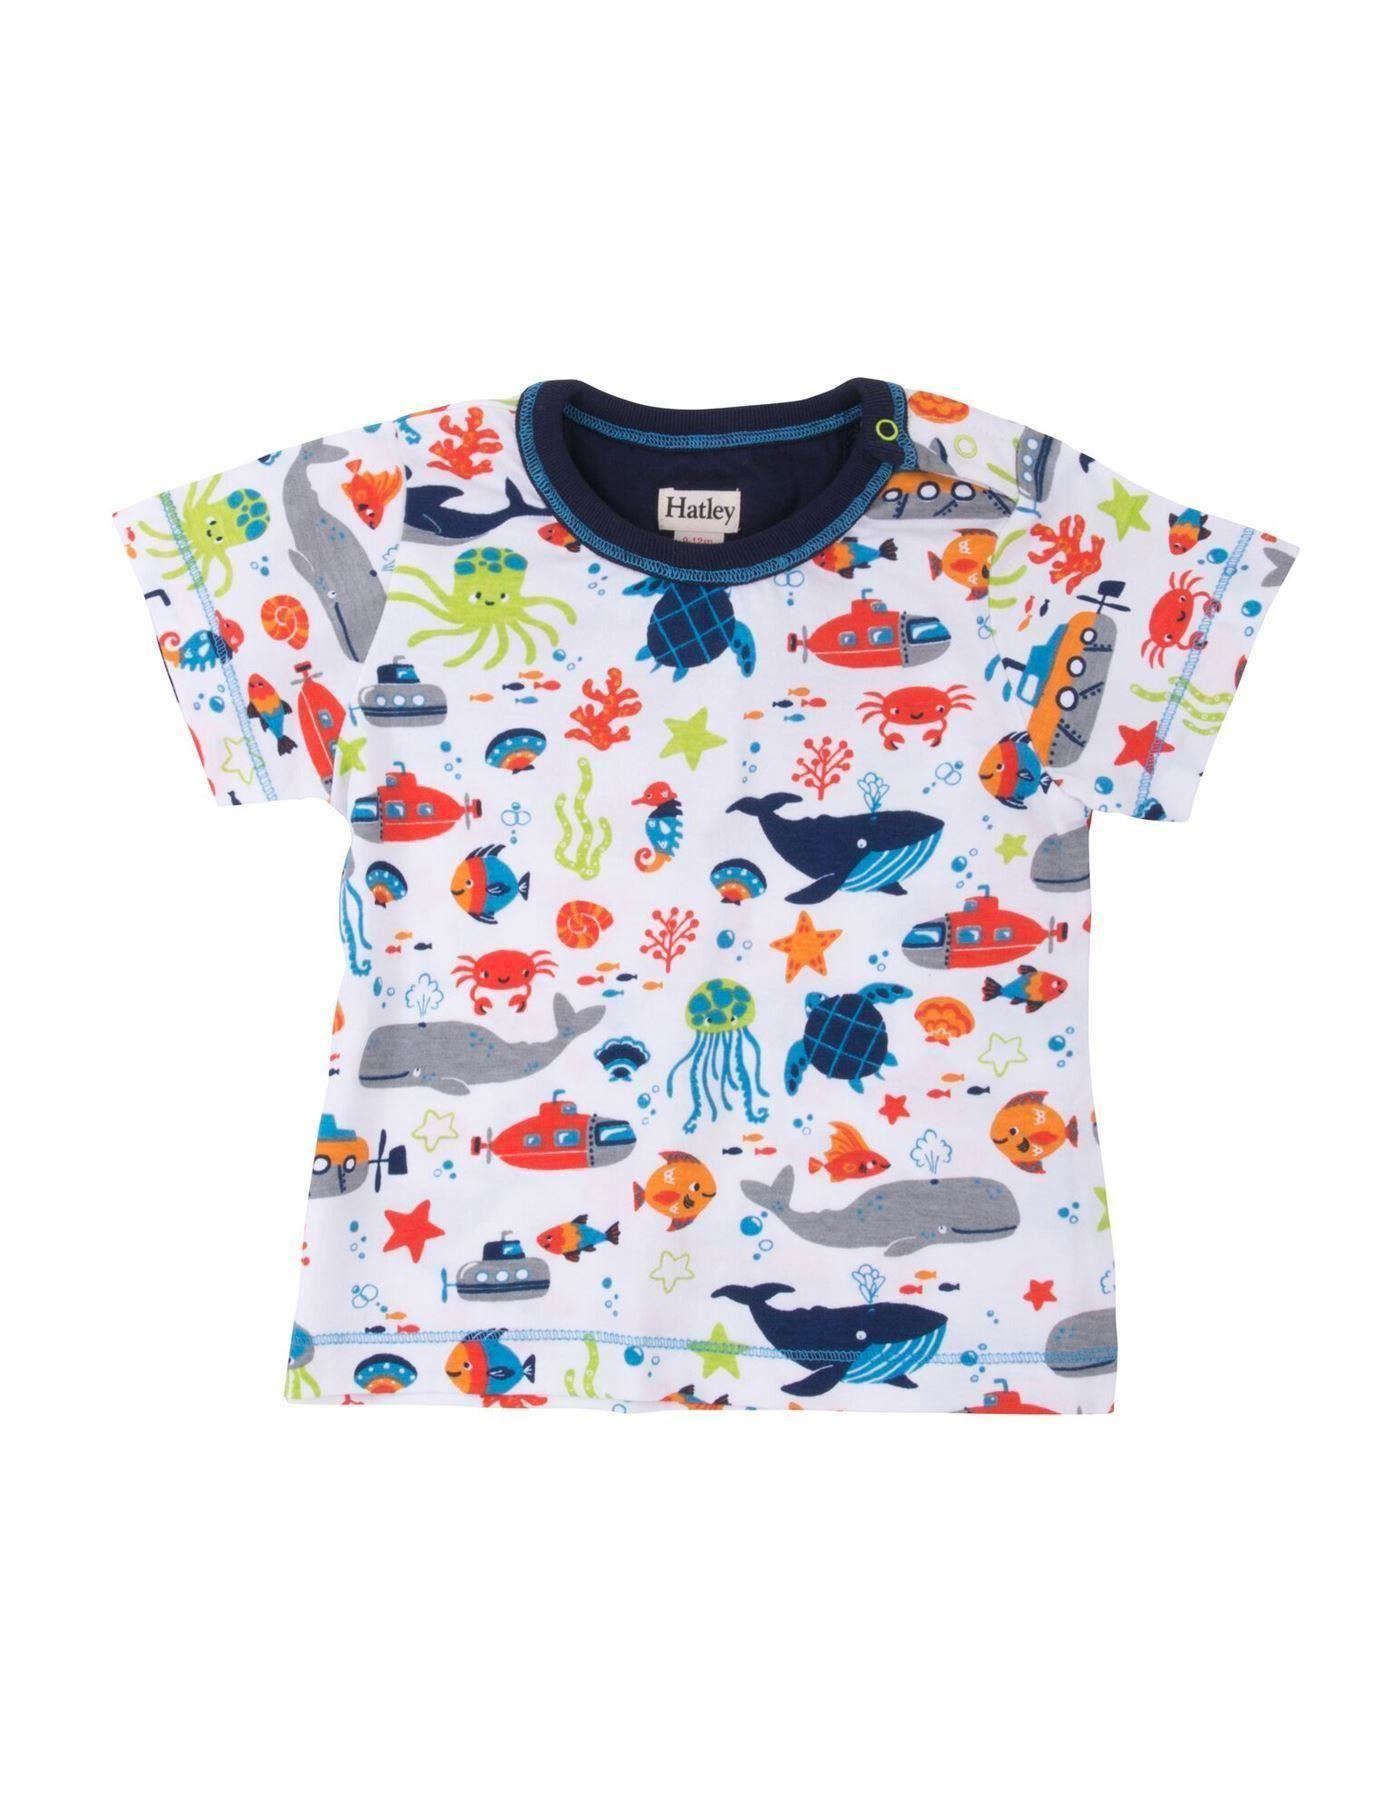 Hatley ocean animals baby graphic tee shirt catfish kids for Graphic t shirts for kids